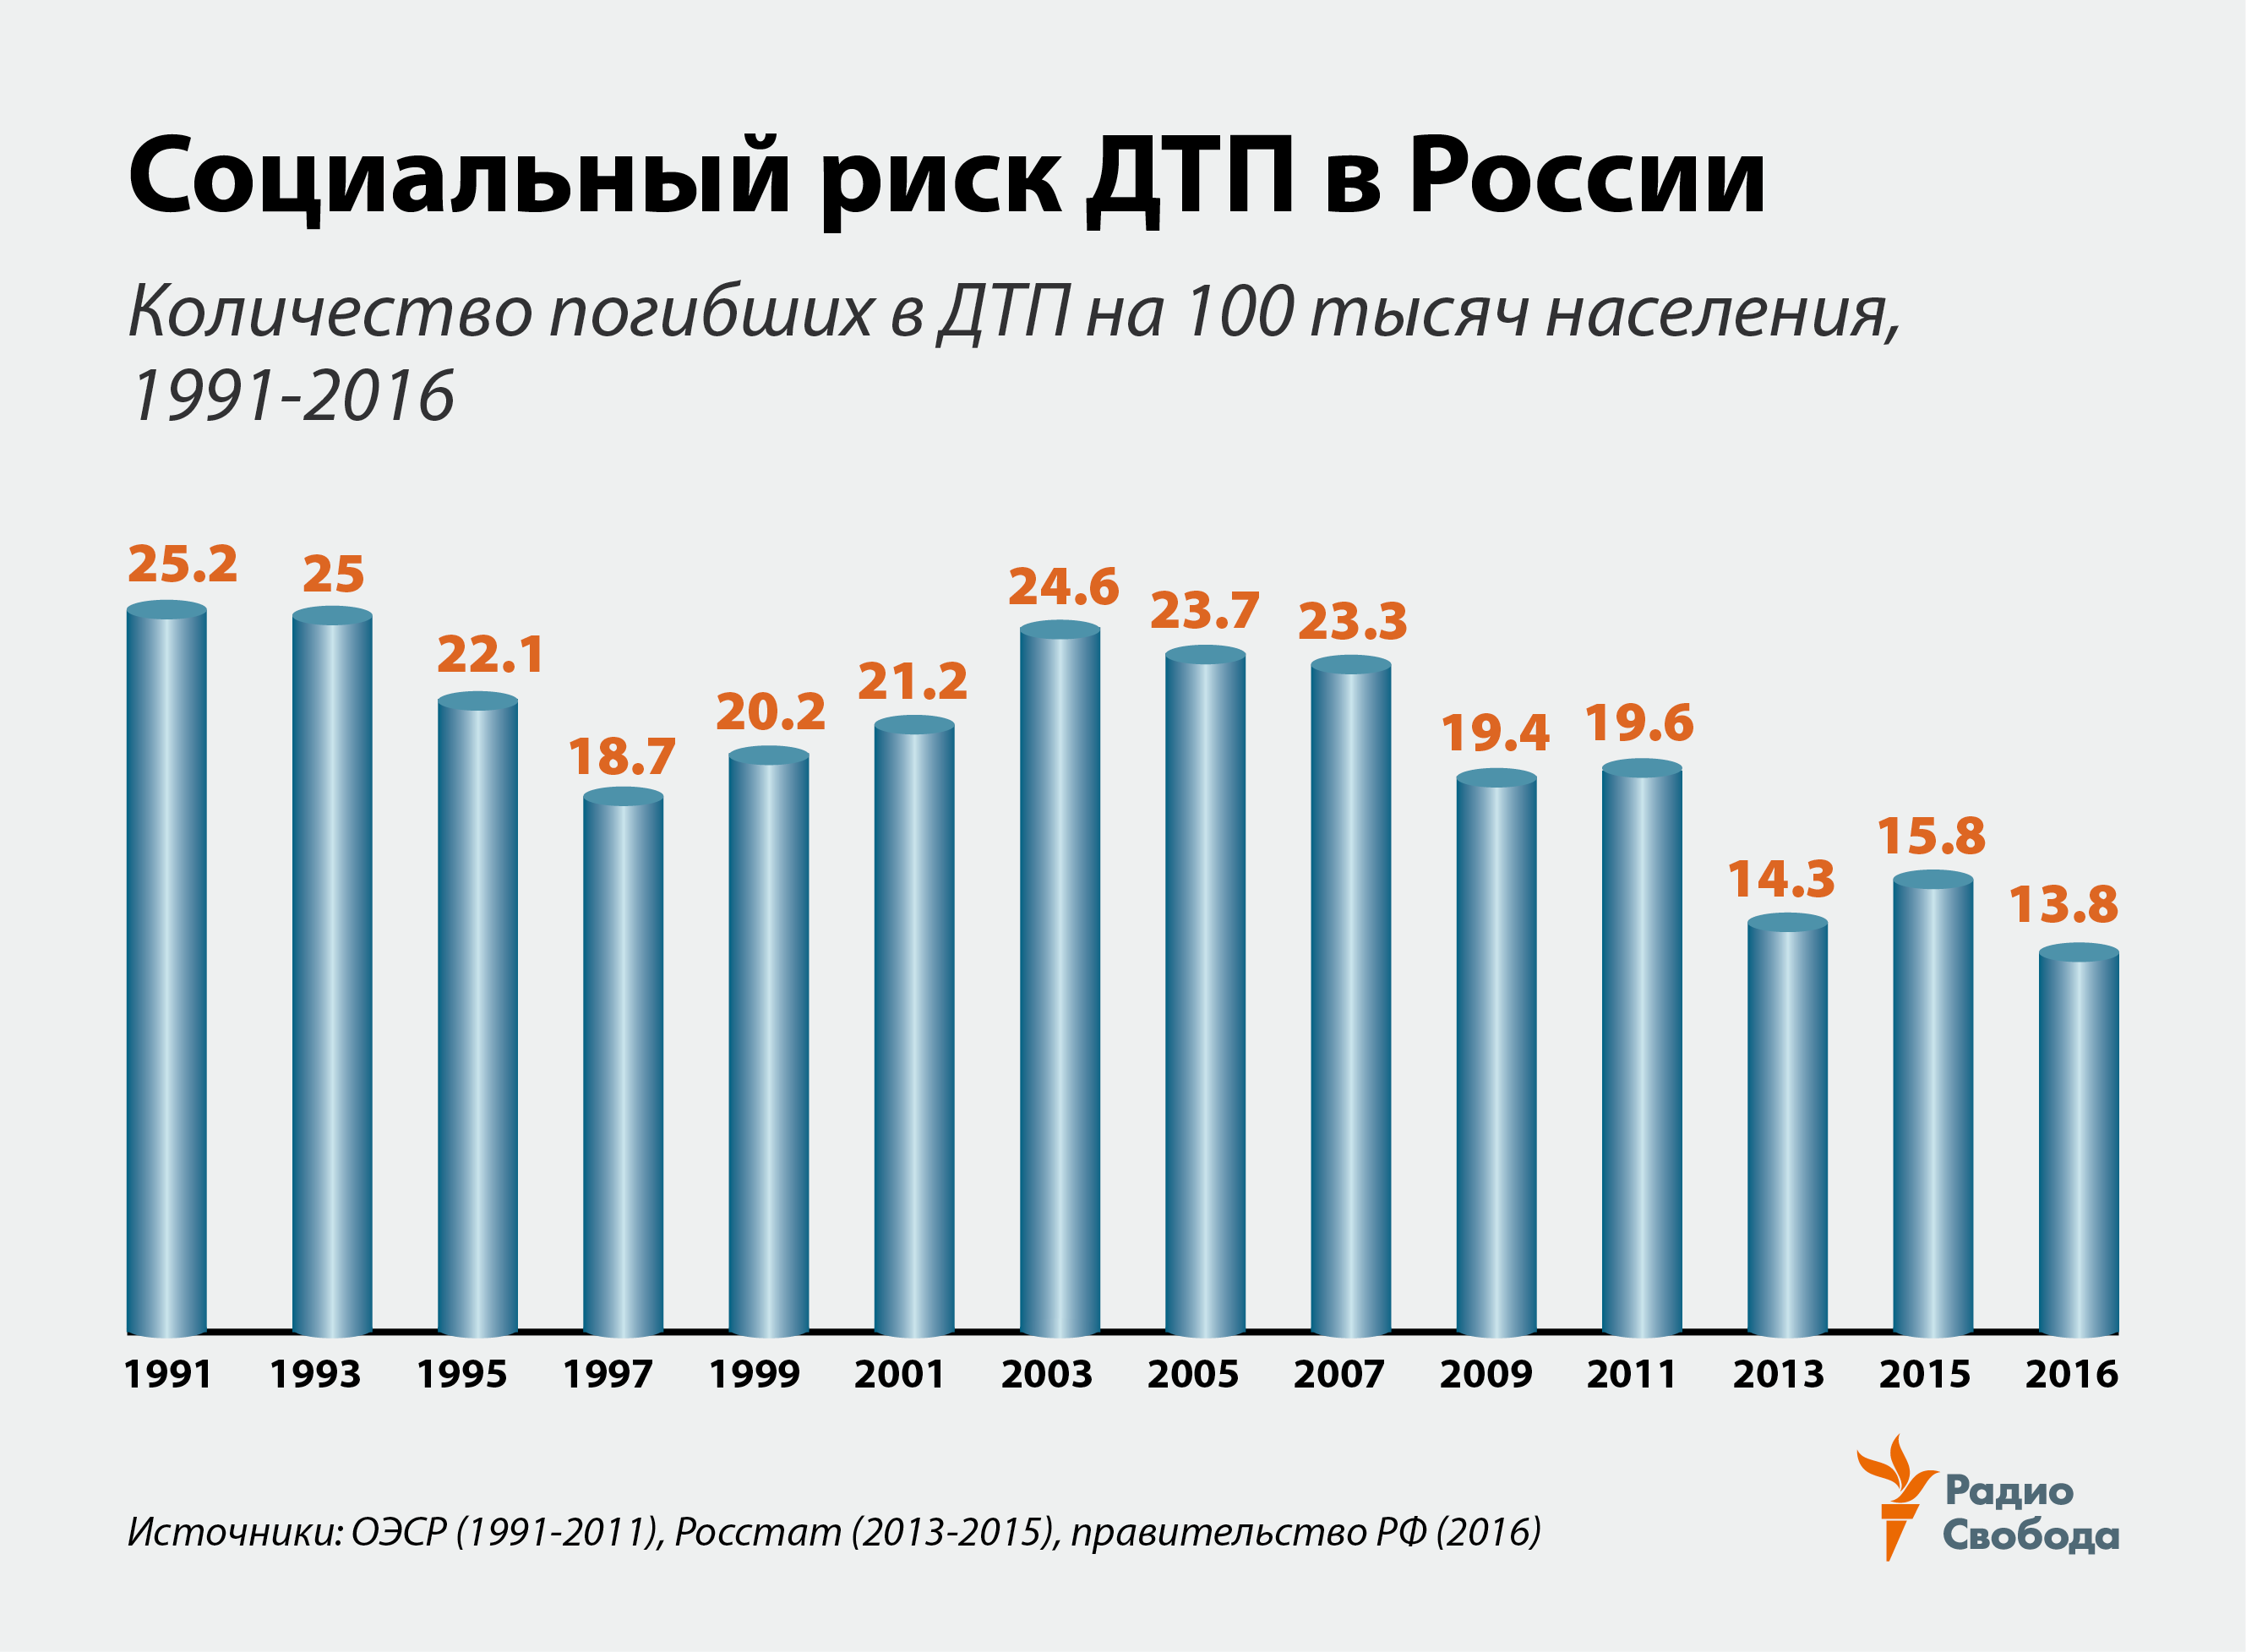 Russia-Factograph-Road Fatalities-Russia-1991-2016